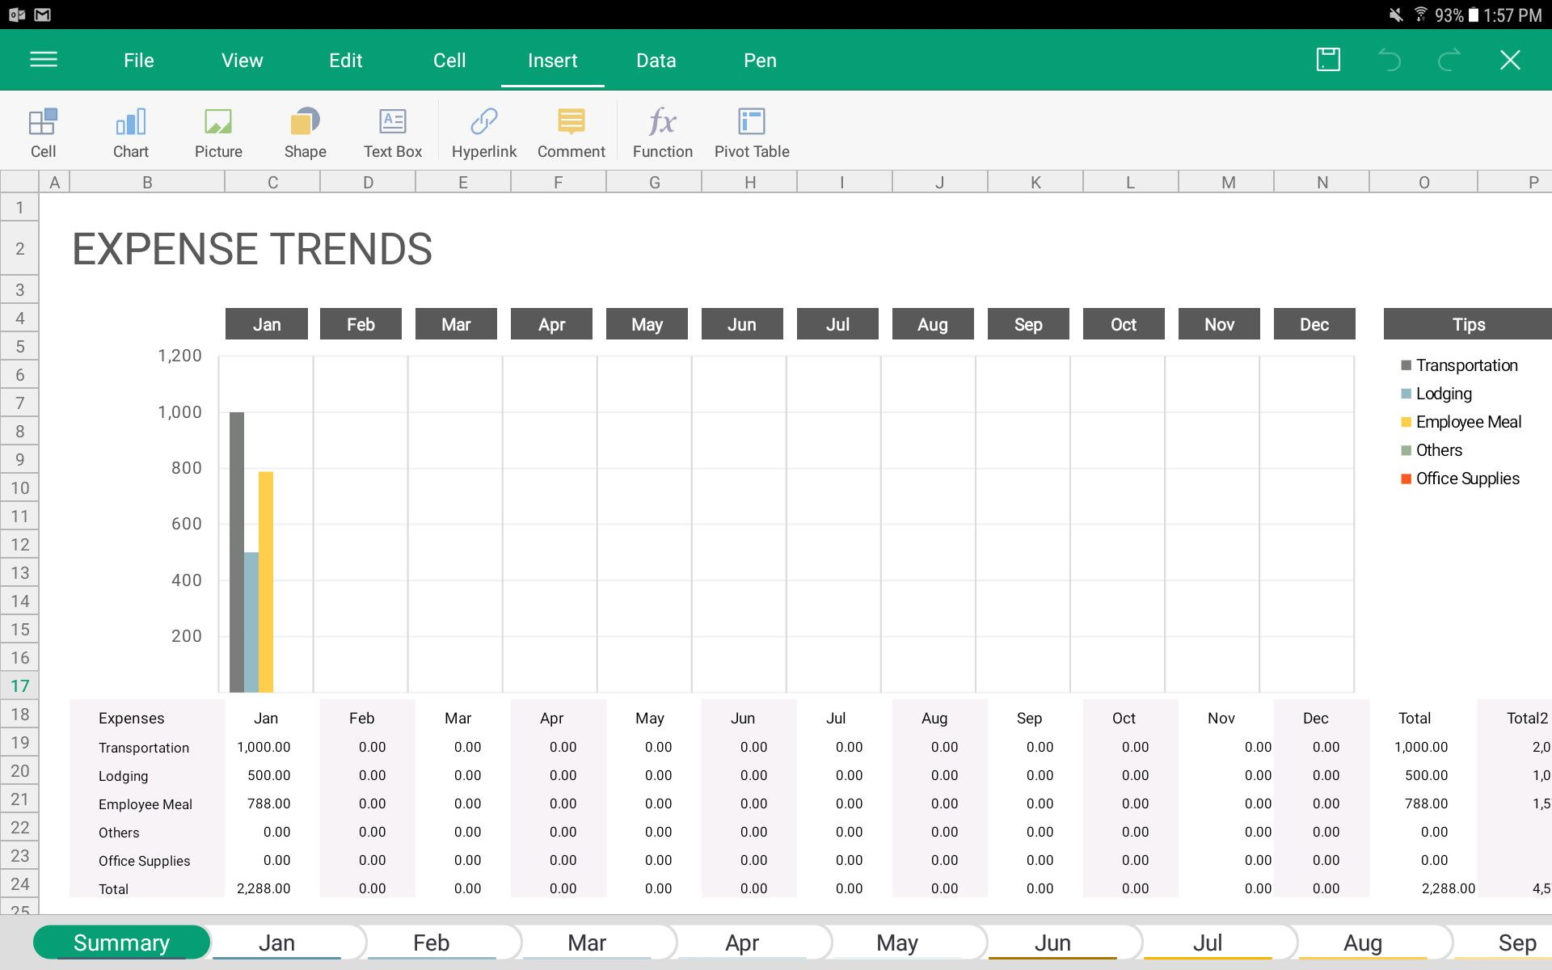 android spreadsheet with macros android spreadsheet app with macros  Android Spreadsheet With Macros Intended For The 5 Best Spreadsheet Apps For Android In 2019 Android Spreadsheet With Macros Printable Spreadshee